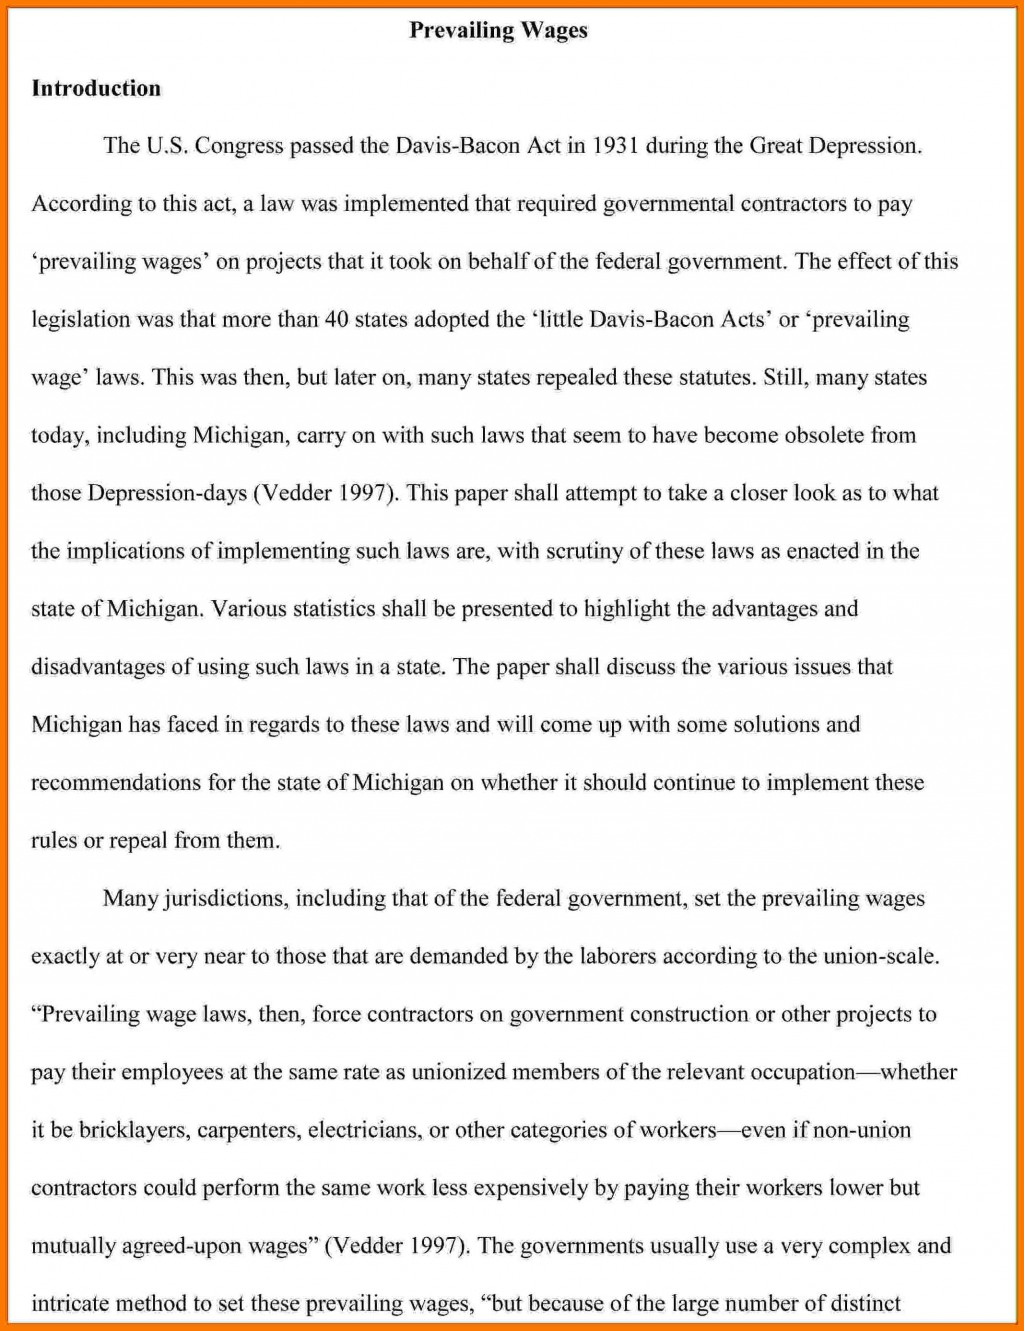 002 Collection Of Solutions Introduction Apa Paper Great Research How To Write Archaicawful For Writing An A Style Sample Large